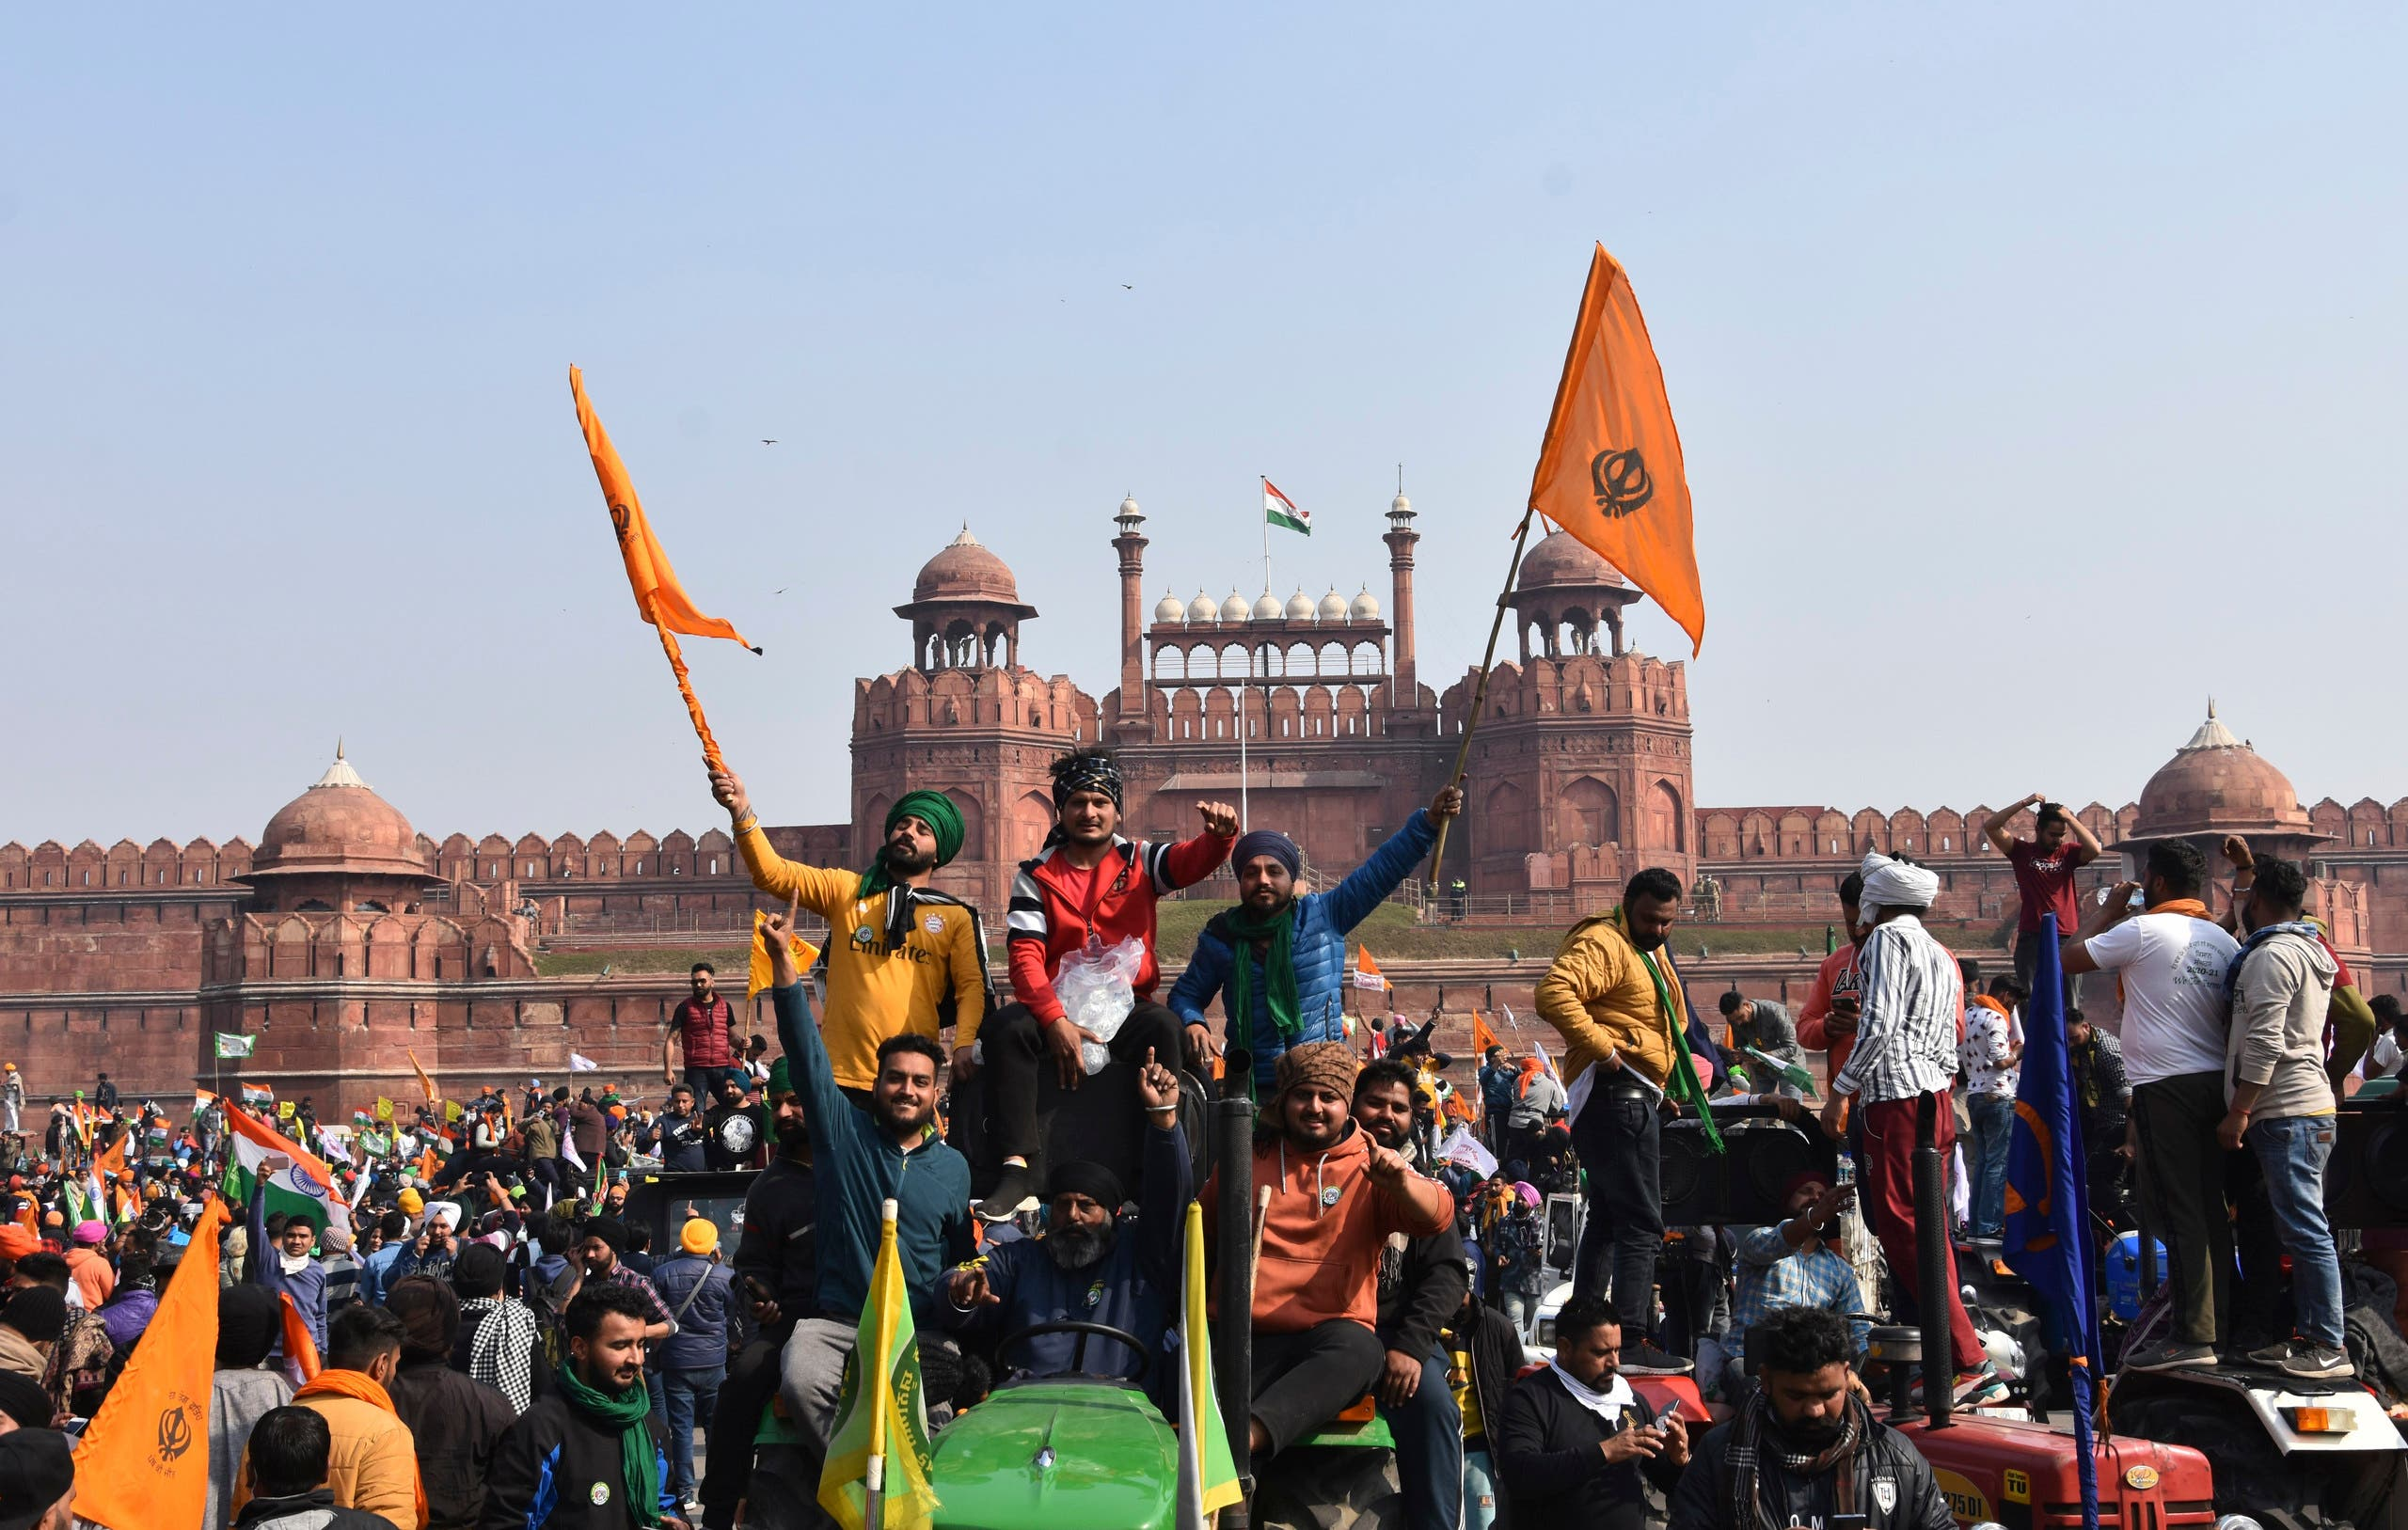 Sikhs hoist a Nishan Sahib, a Sikh religious flag, on a minaret of the historic Red Fort monument in New Delhi, India, Tuesday, Jan. 26, 2021. (AP)